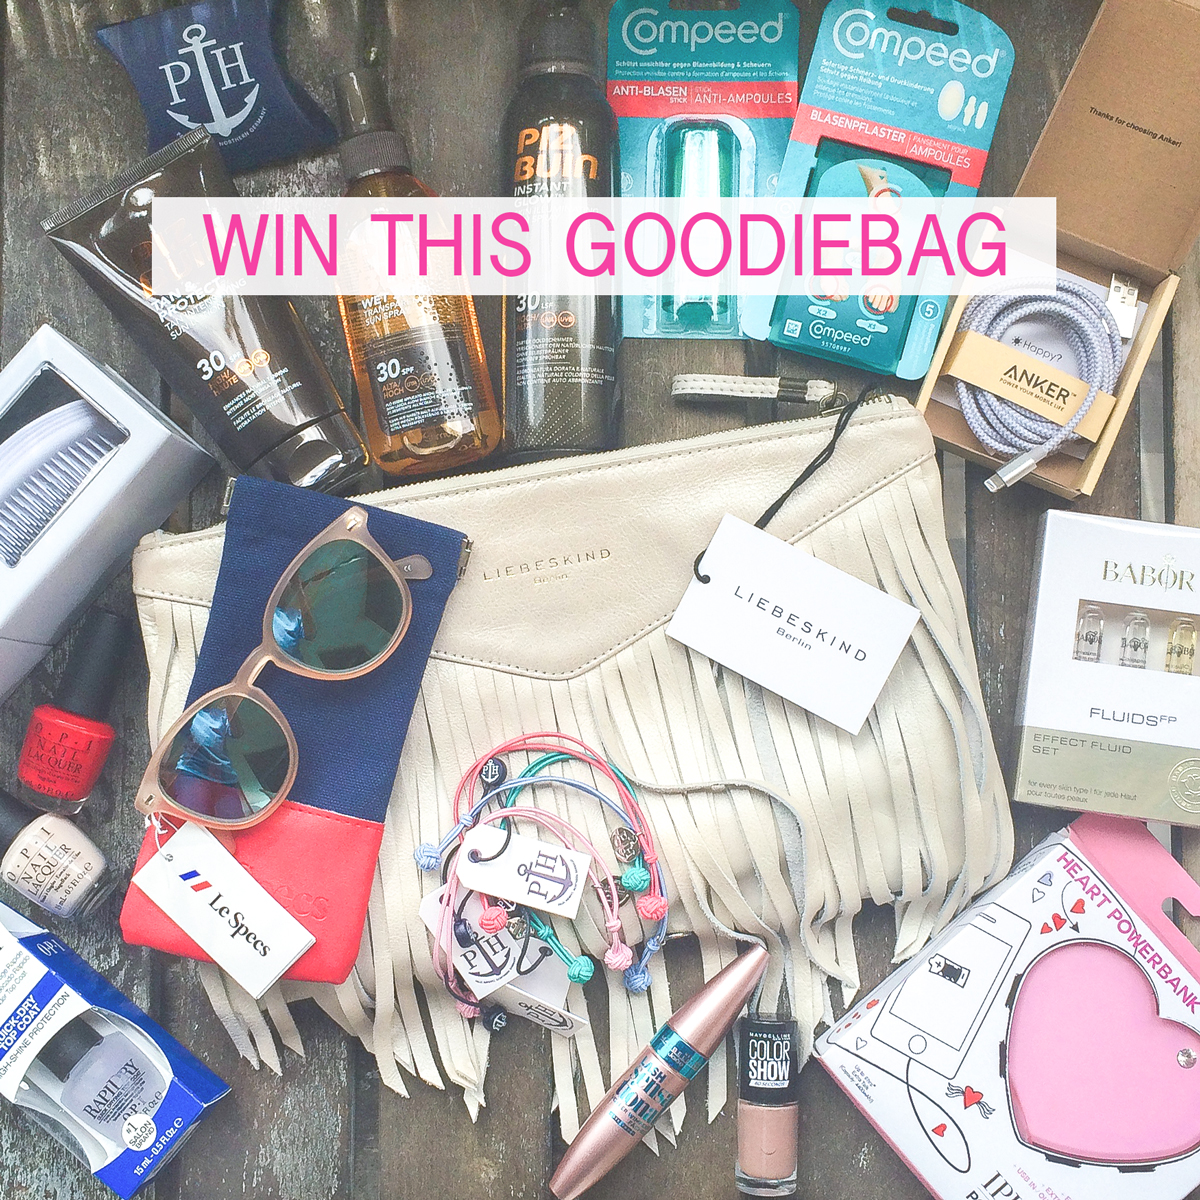 Win This XXL Goodie Bag + Instagram Shoutout II How I met my outfit II Gewinnspiel II photos: Dana Lohmüller